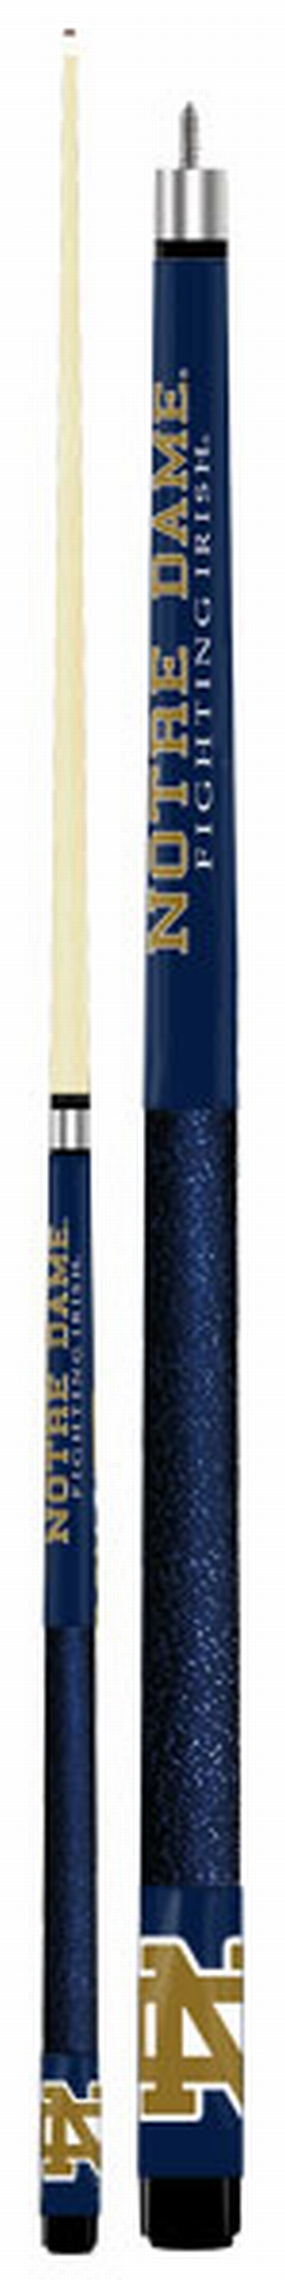 Notre Dame Fighting Irish Two-Piece Players Brand Billiard Cue